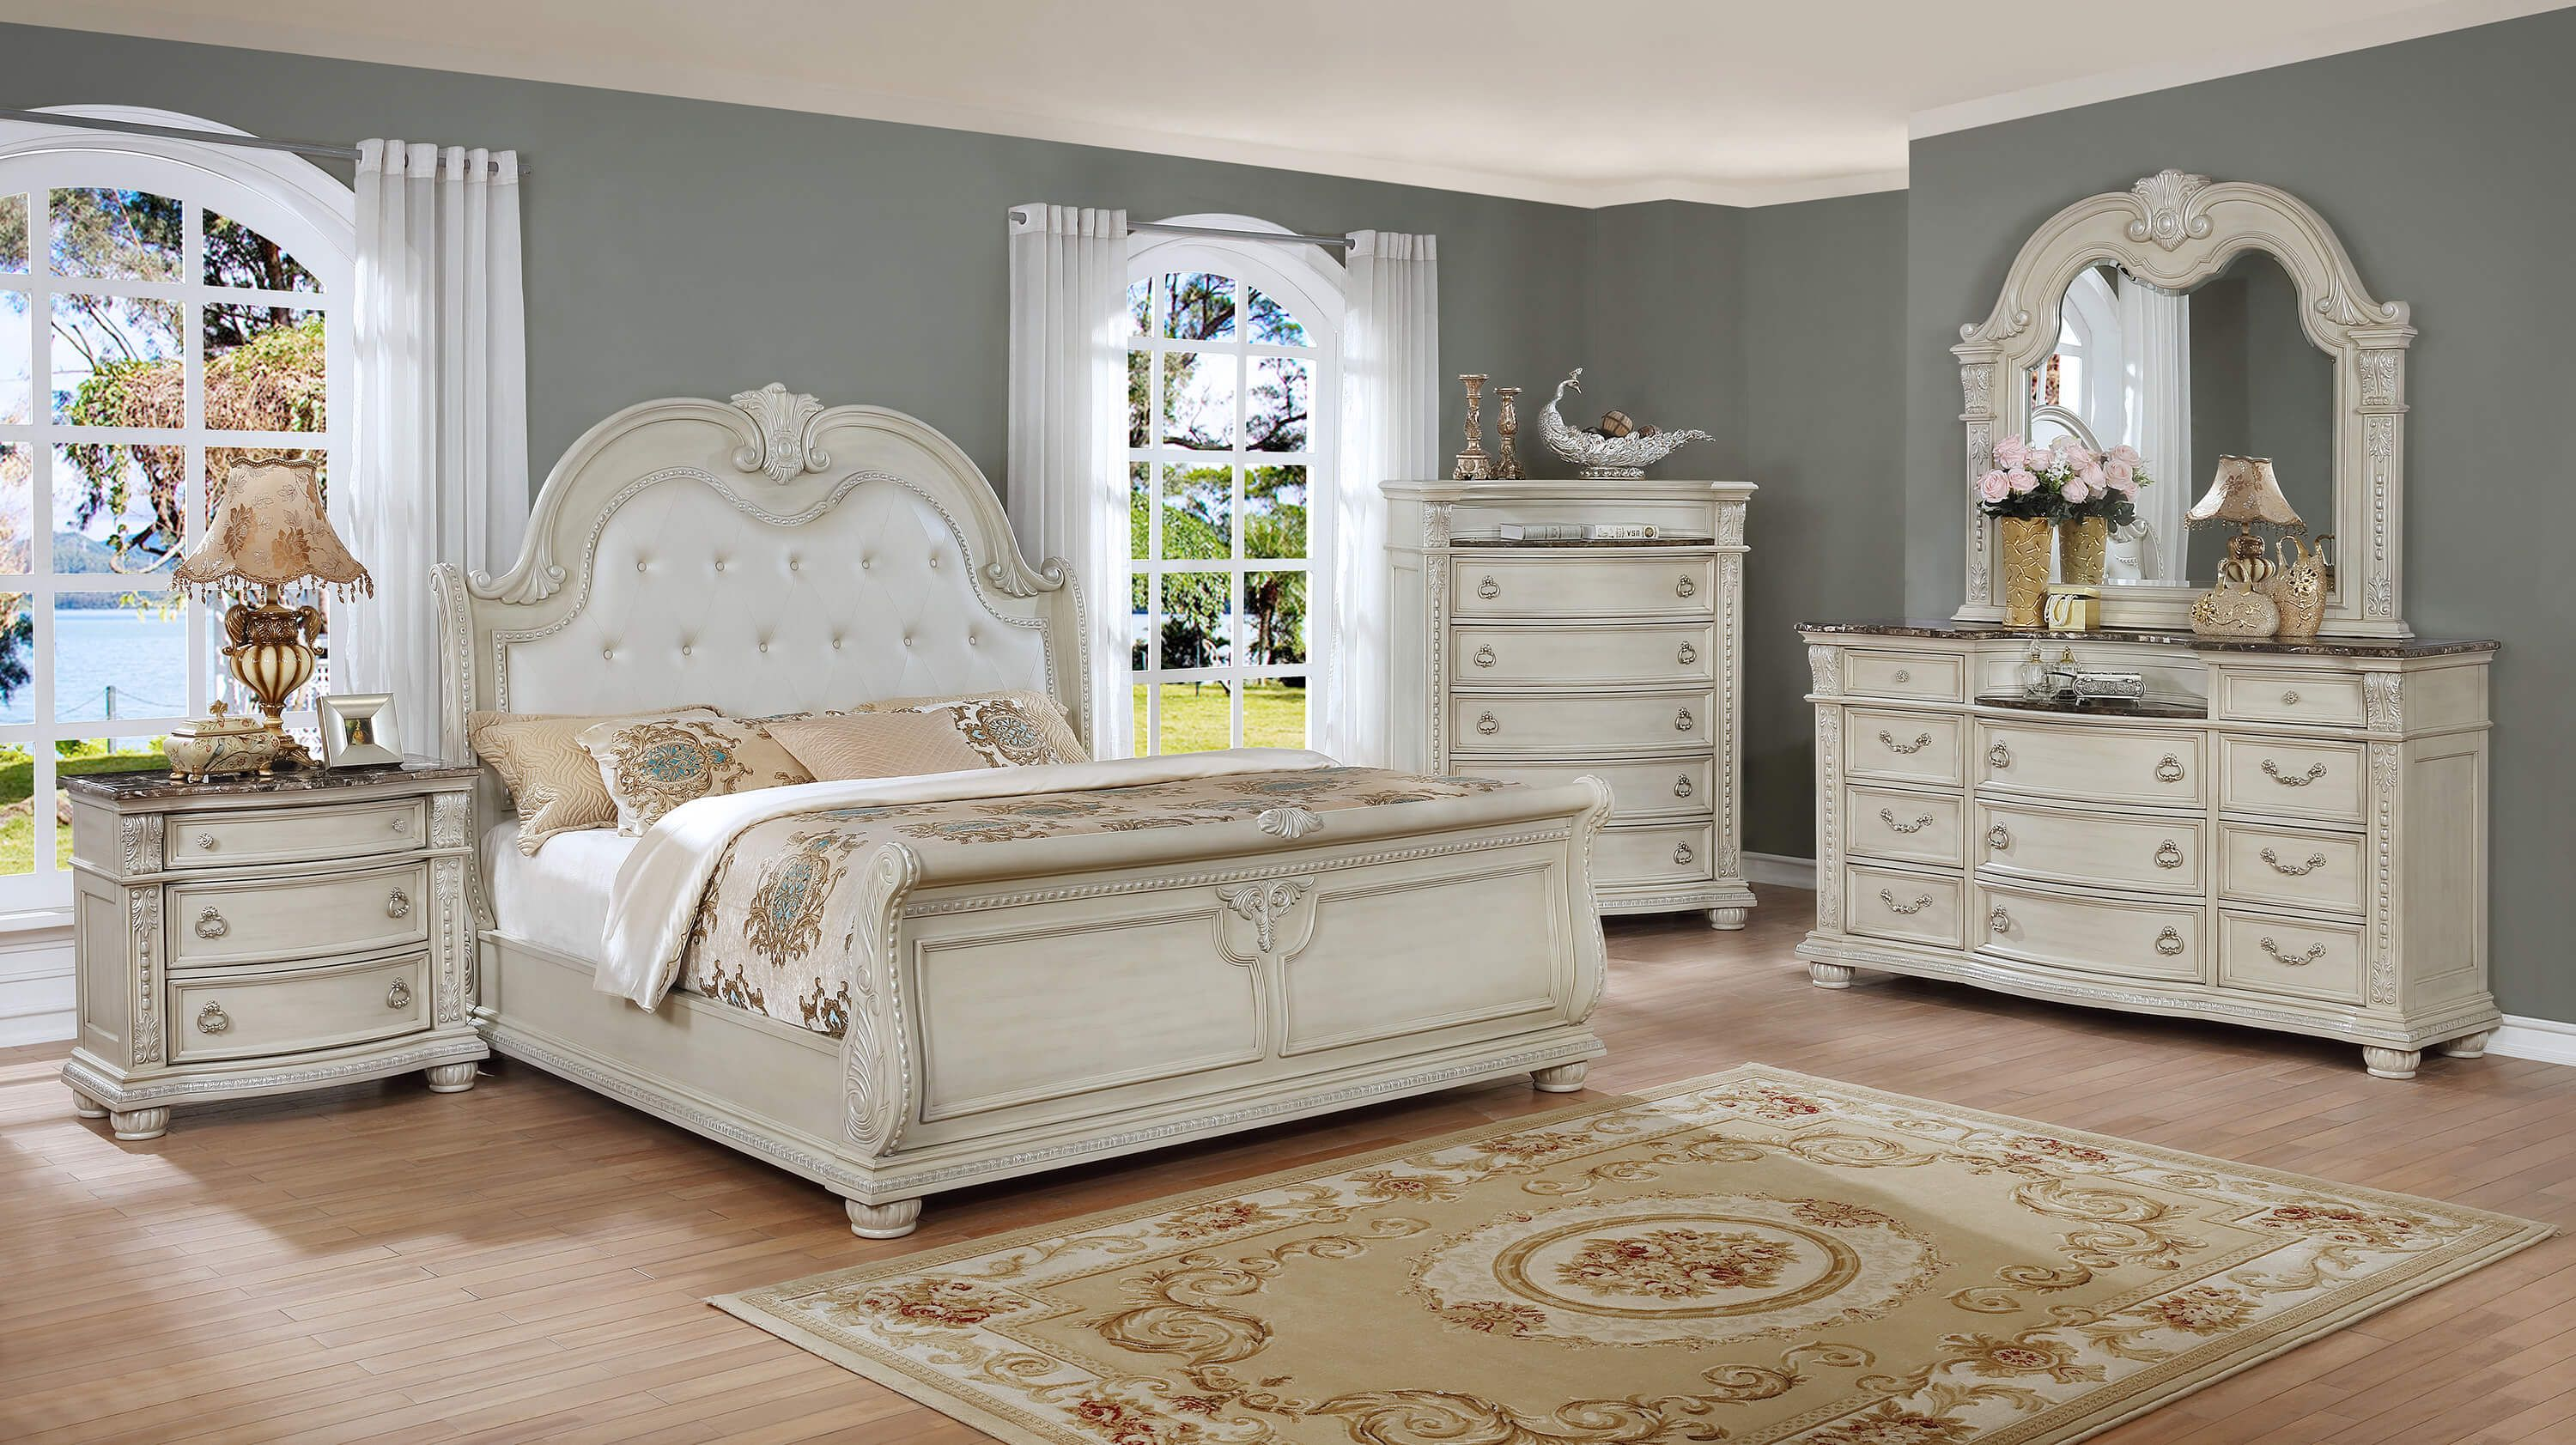 White Bedroom Furniture For Sale Near Me in 2020 | White ...